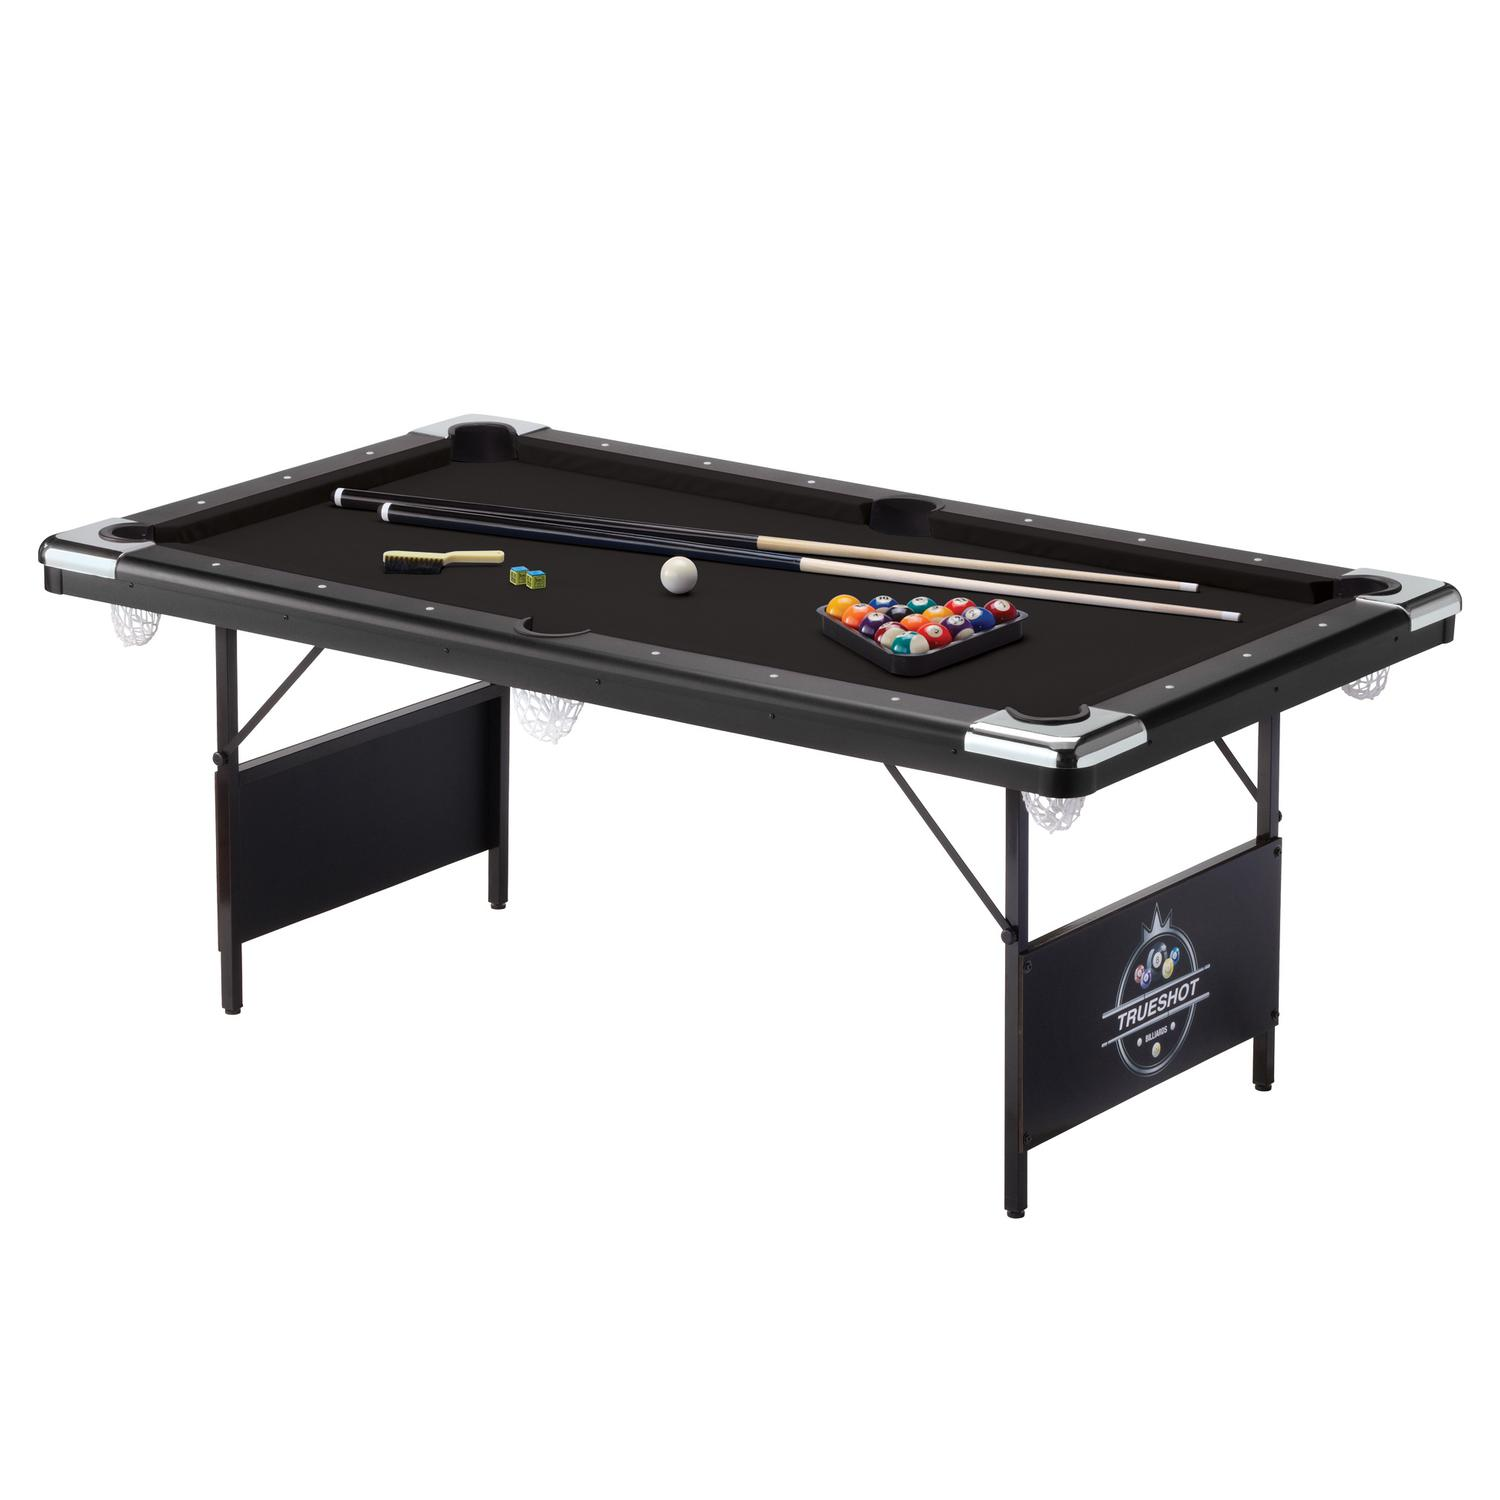 Fat Cat Trueshot Portable Pool Table Pooltables Com